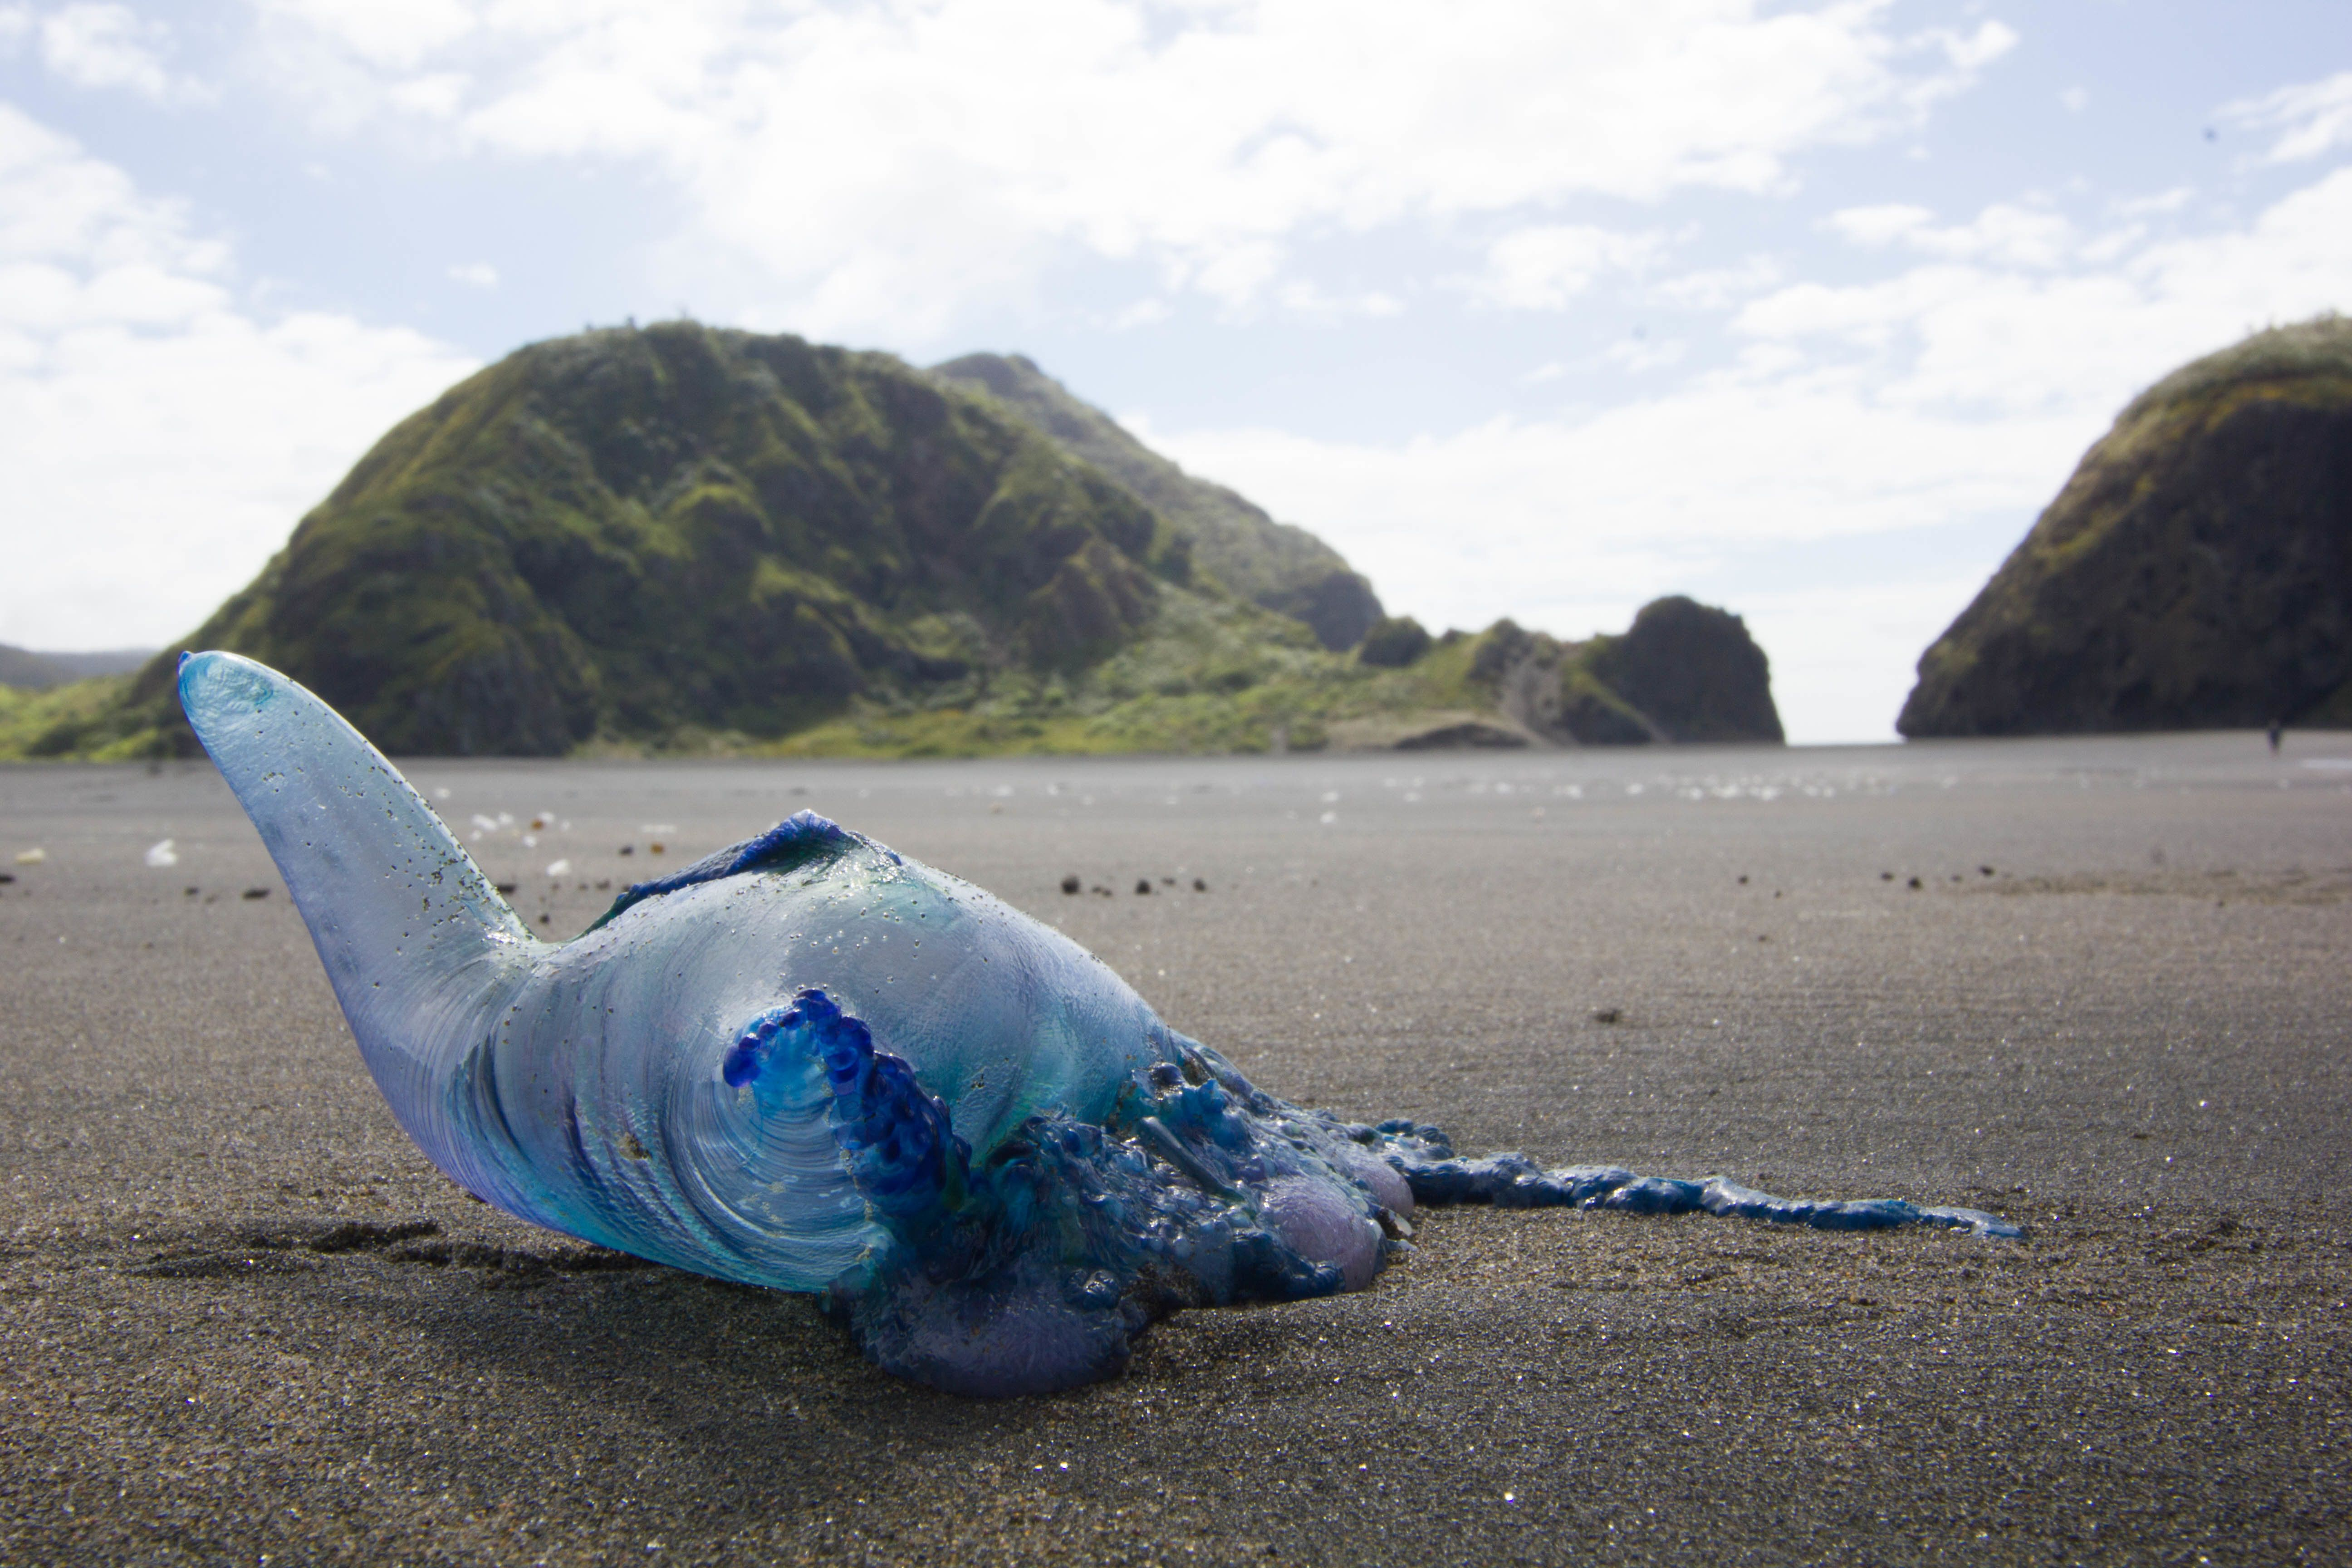 Abluebottle jellyfish pictured on a beach in New